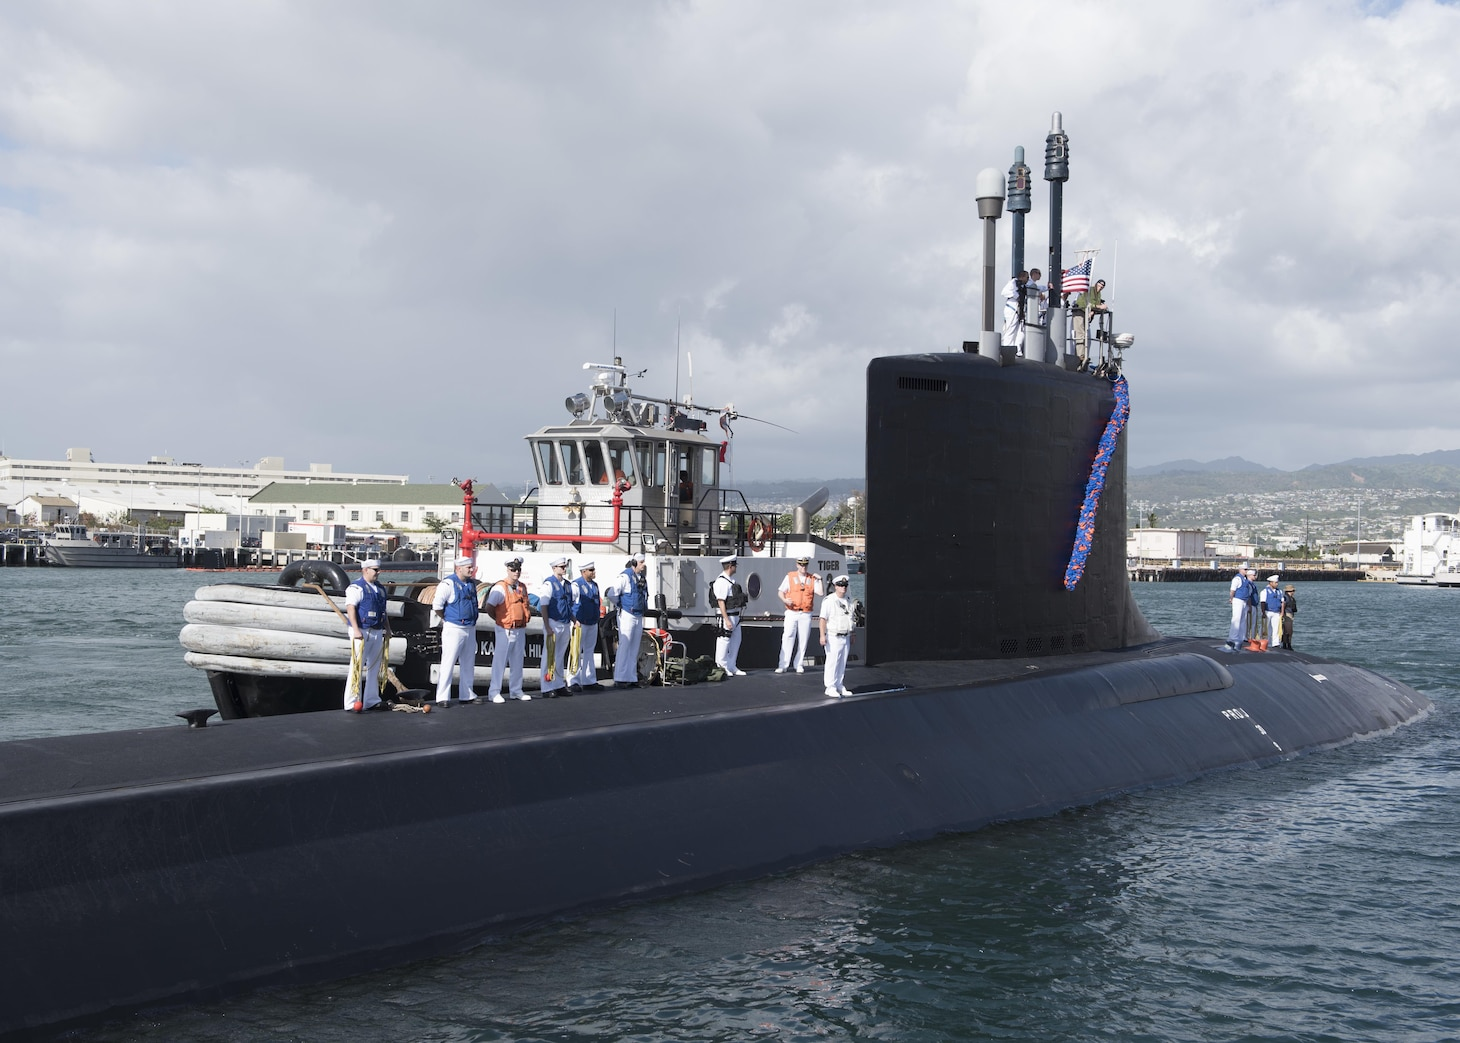 Virginia-class attack submarine USS Illinois (SSN 786) arrives at Joint Base Pearl Harbor-Hickam, after completing a change of homeport from Groton, Connecticut, Nov. 22.  (U.S. Navy Photo by Mass Communication Specialist 2nd Class Shaun Griffin/Released)